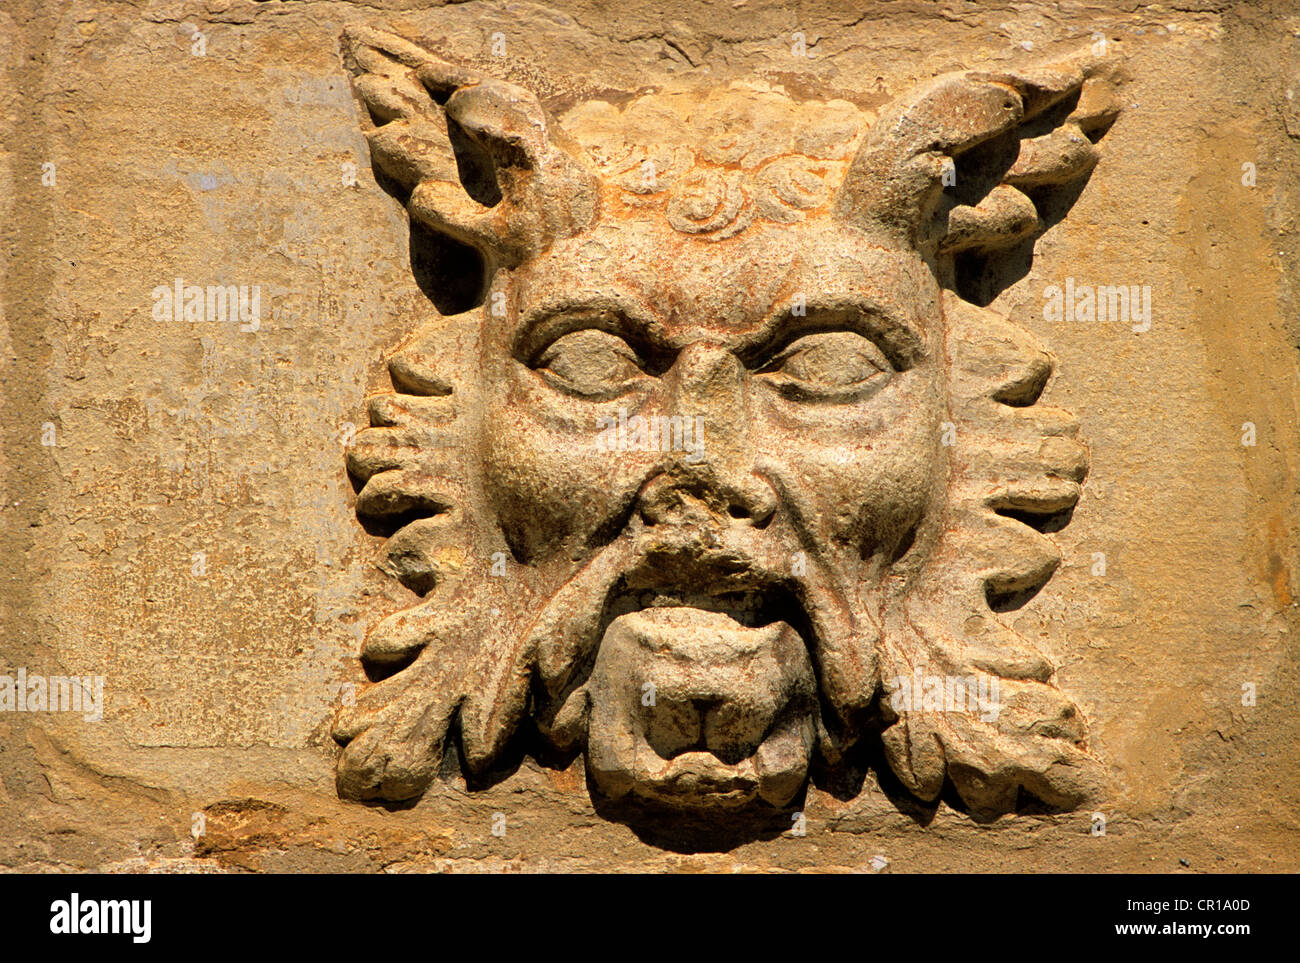 Spain, Catalonia, Tarragona Province, Conca de Barbera comarca, city of Montblanc, detail of the facade of Santa - Stock Image